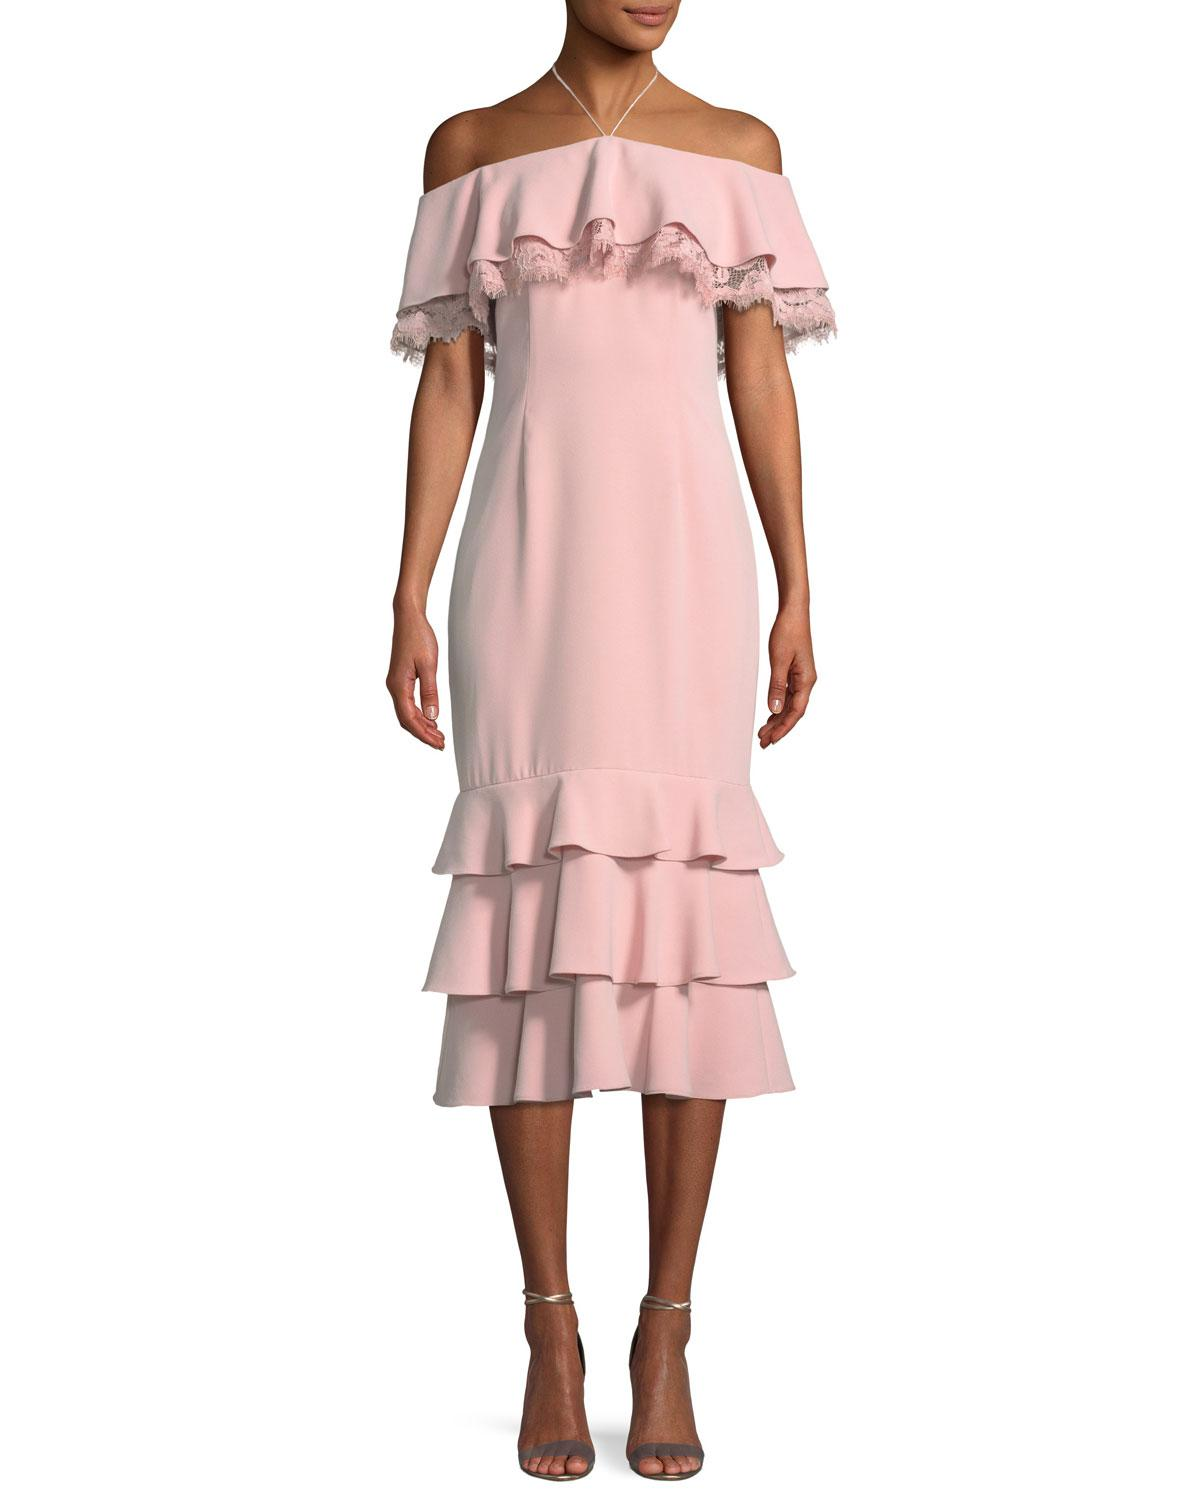 7ea2e2dac14 Lyst - Aidan By Aidan Mattox Crepe And Lace Cocktail Dress in Pink ...